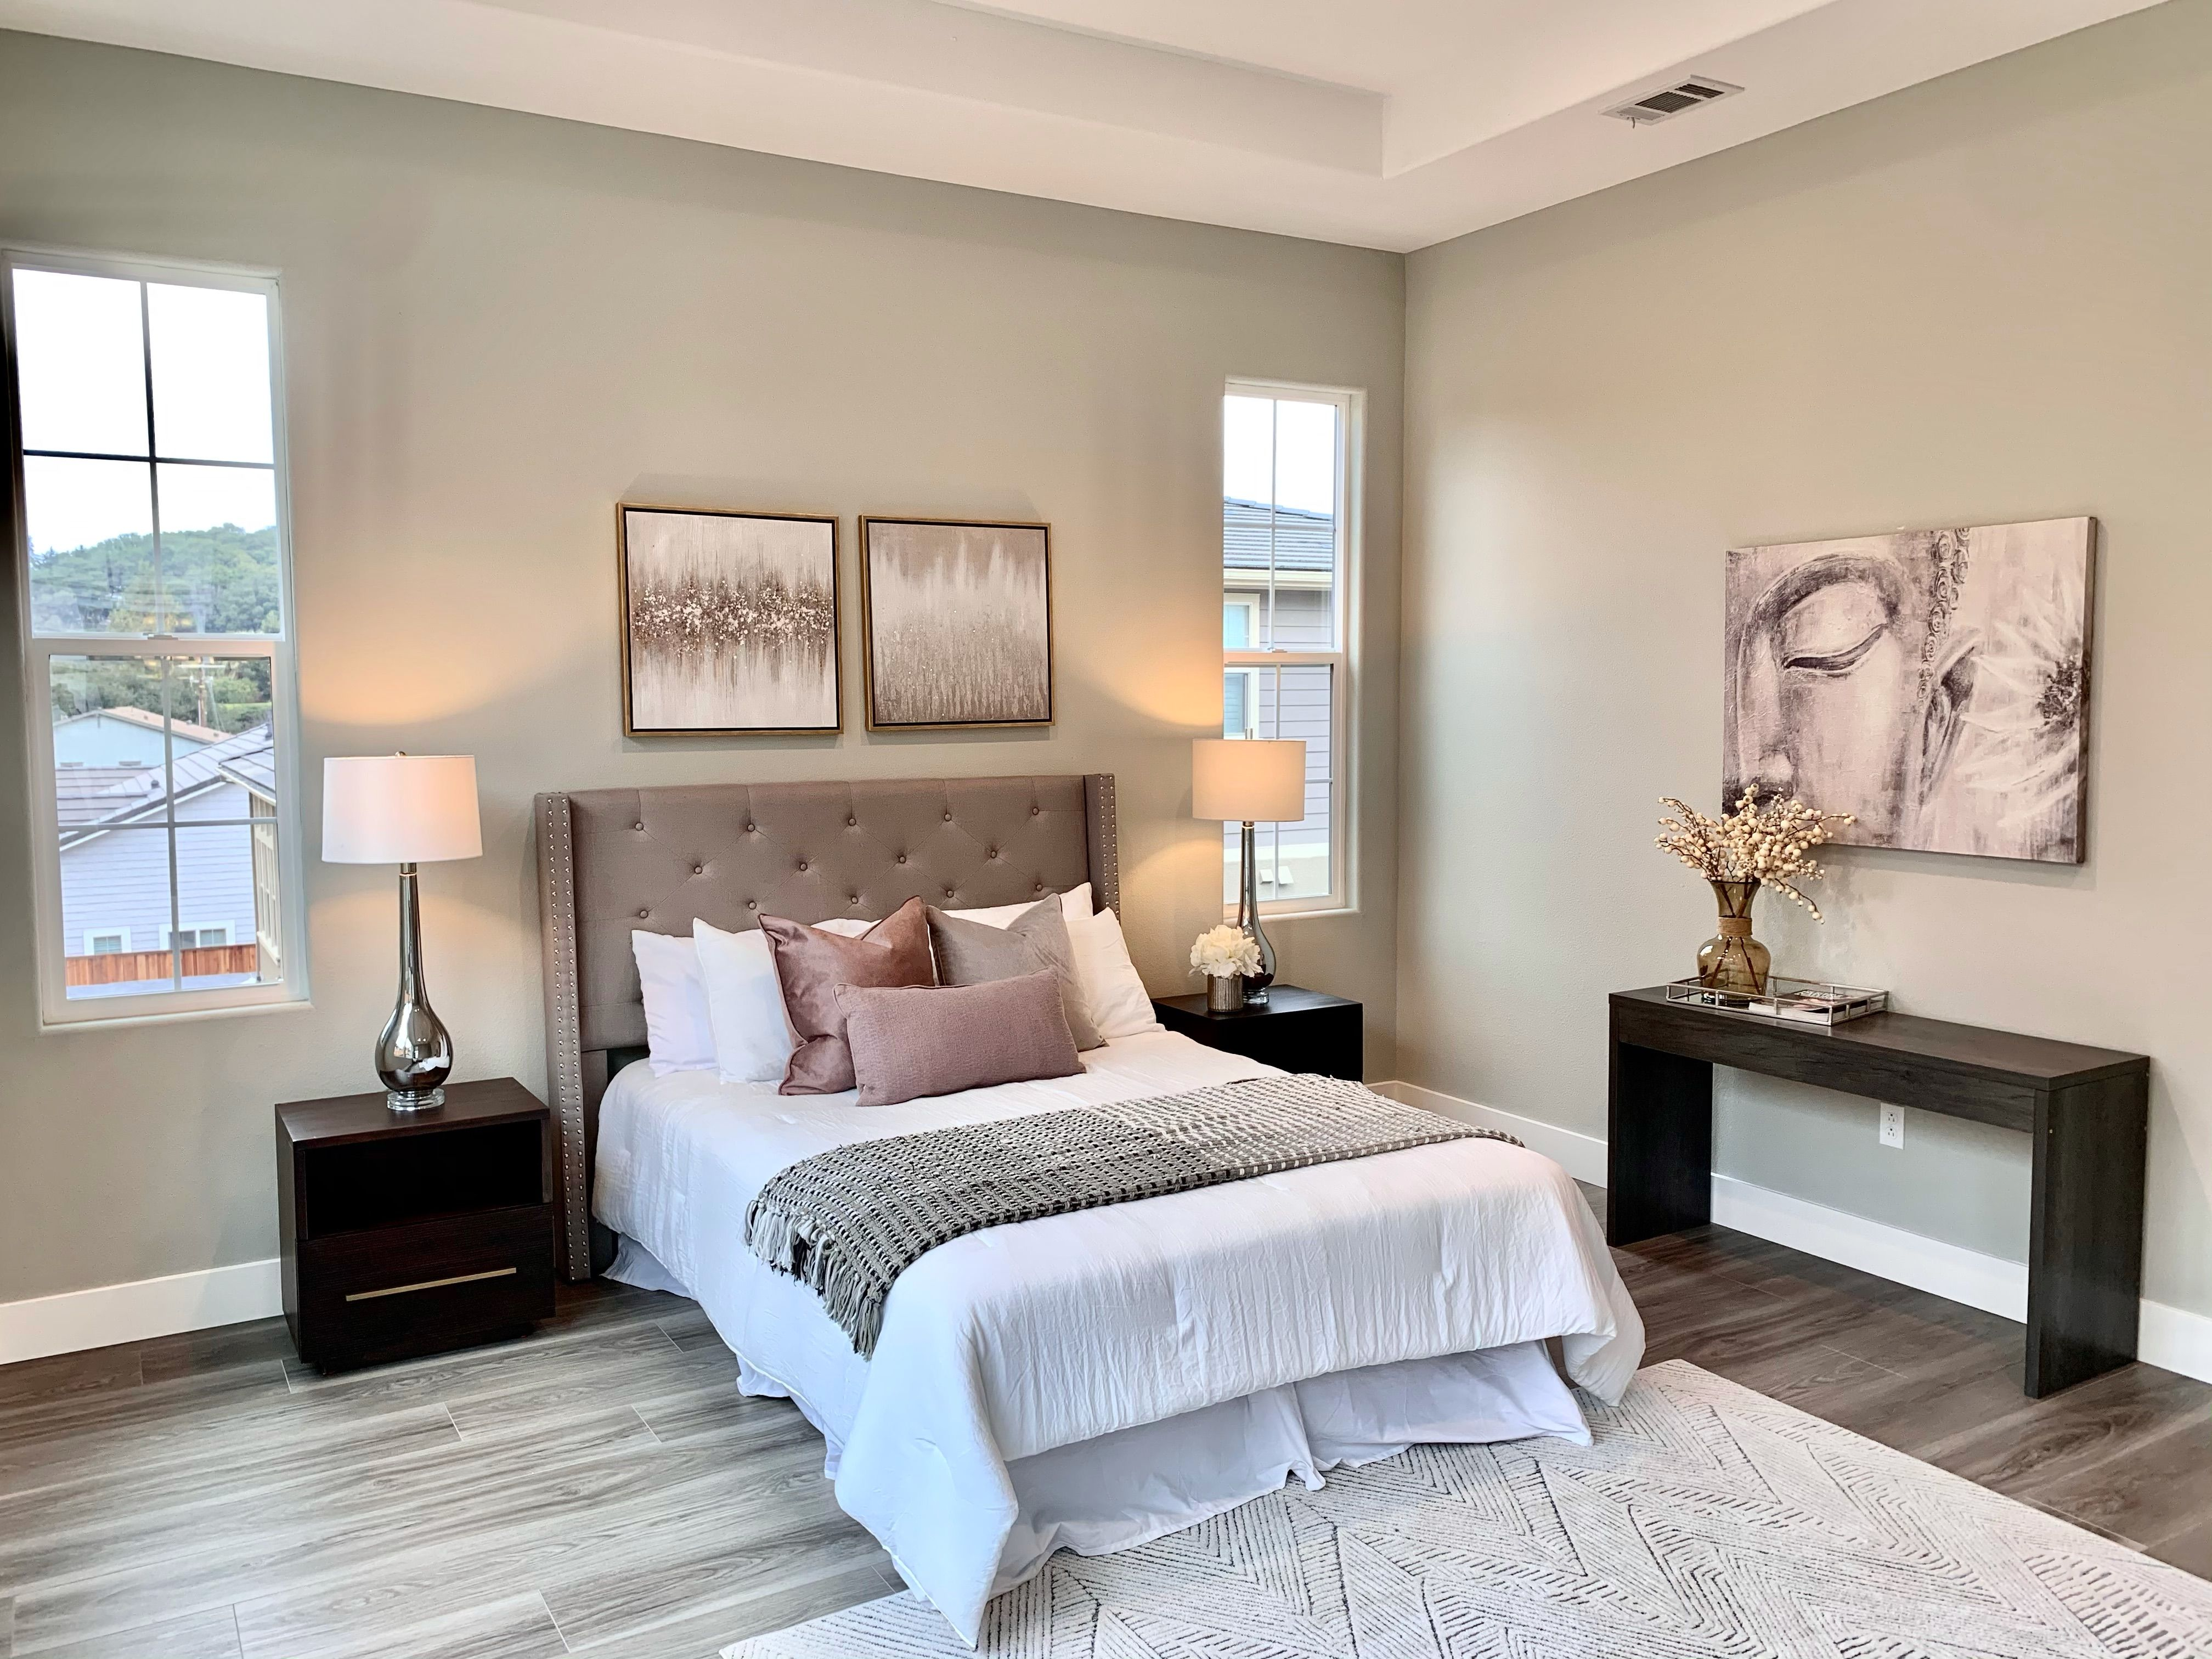 Bedroom featured in the Lot 14 By Lafferty Communities in Santa Rosa, CA